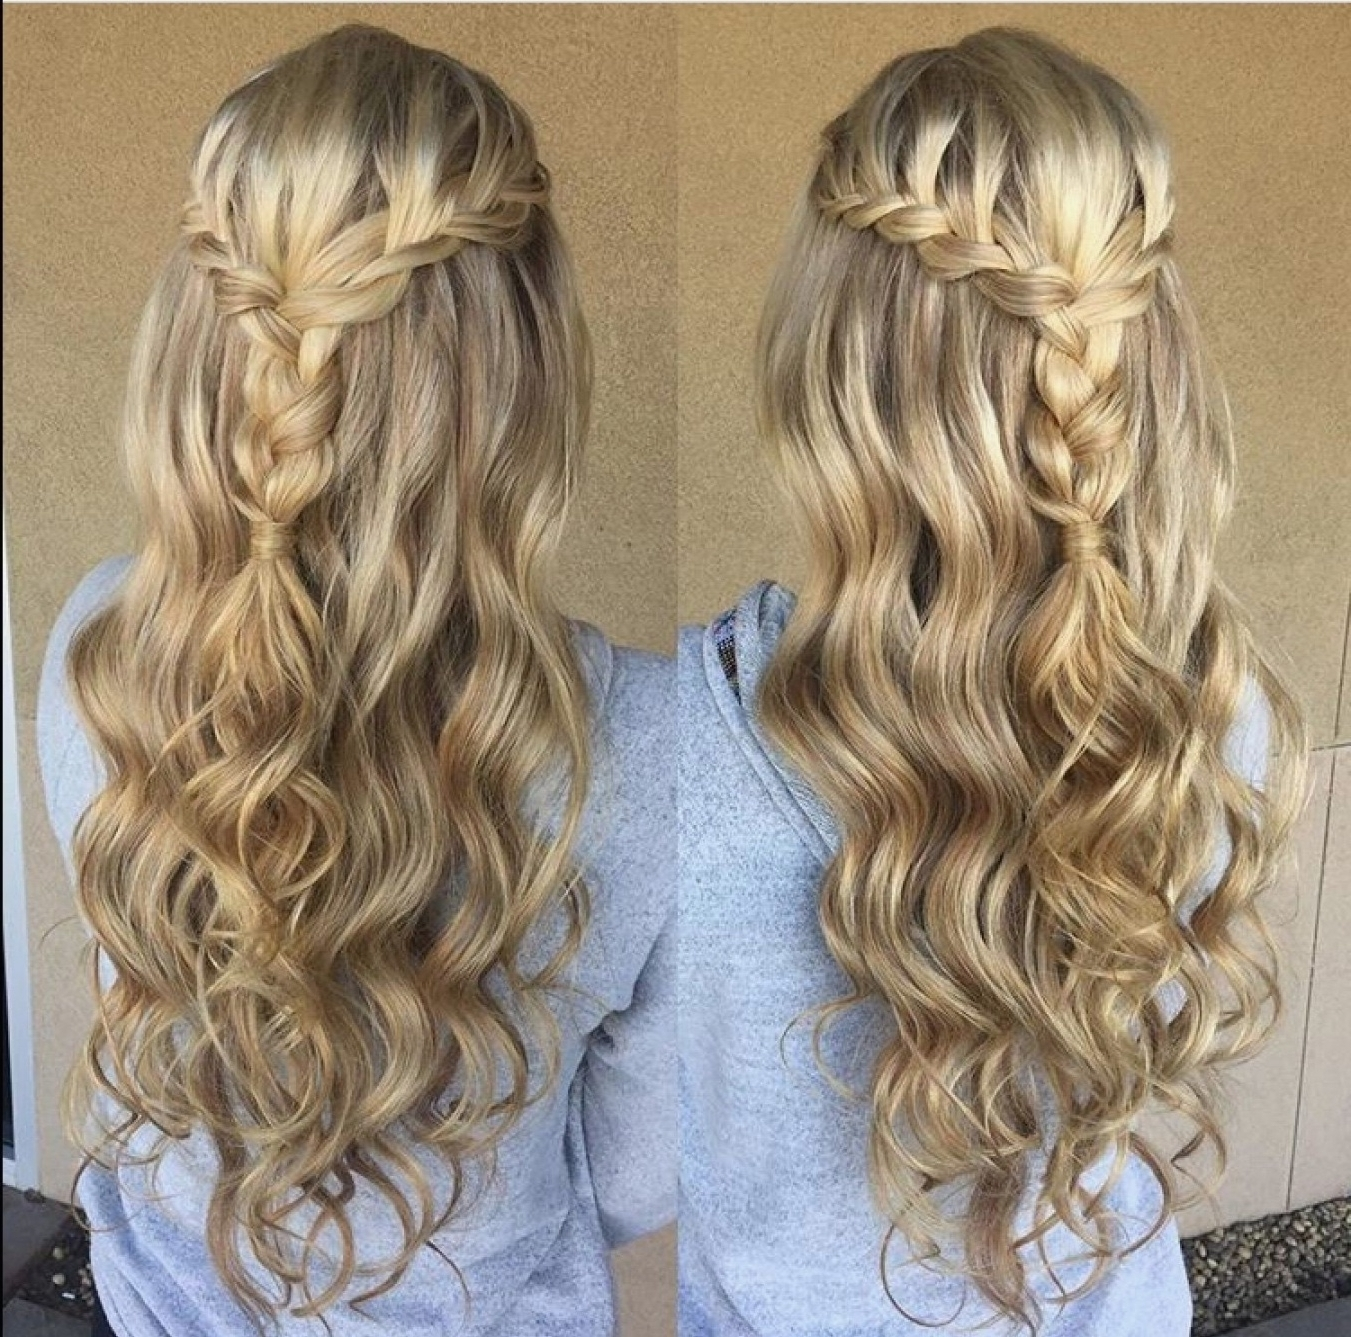 Braid Hairstyles : Cool Half Up Half Down Braided Prom Hairstyles In Throughout Widely Used Braided Evening Hairstyles (View 11 of 15)